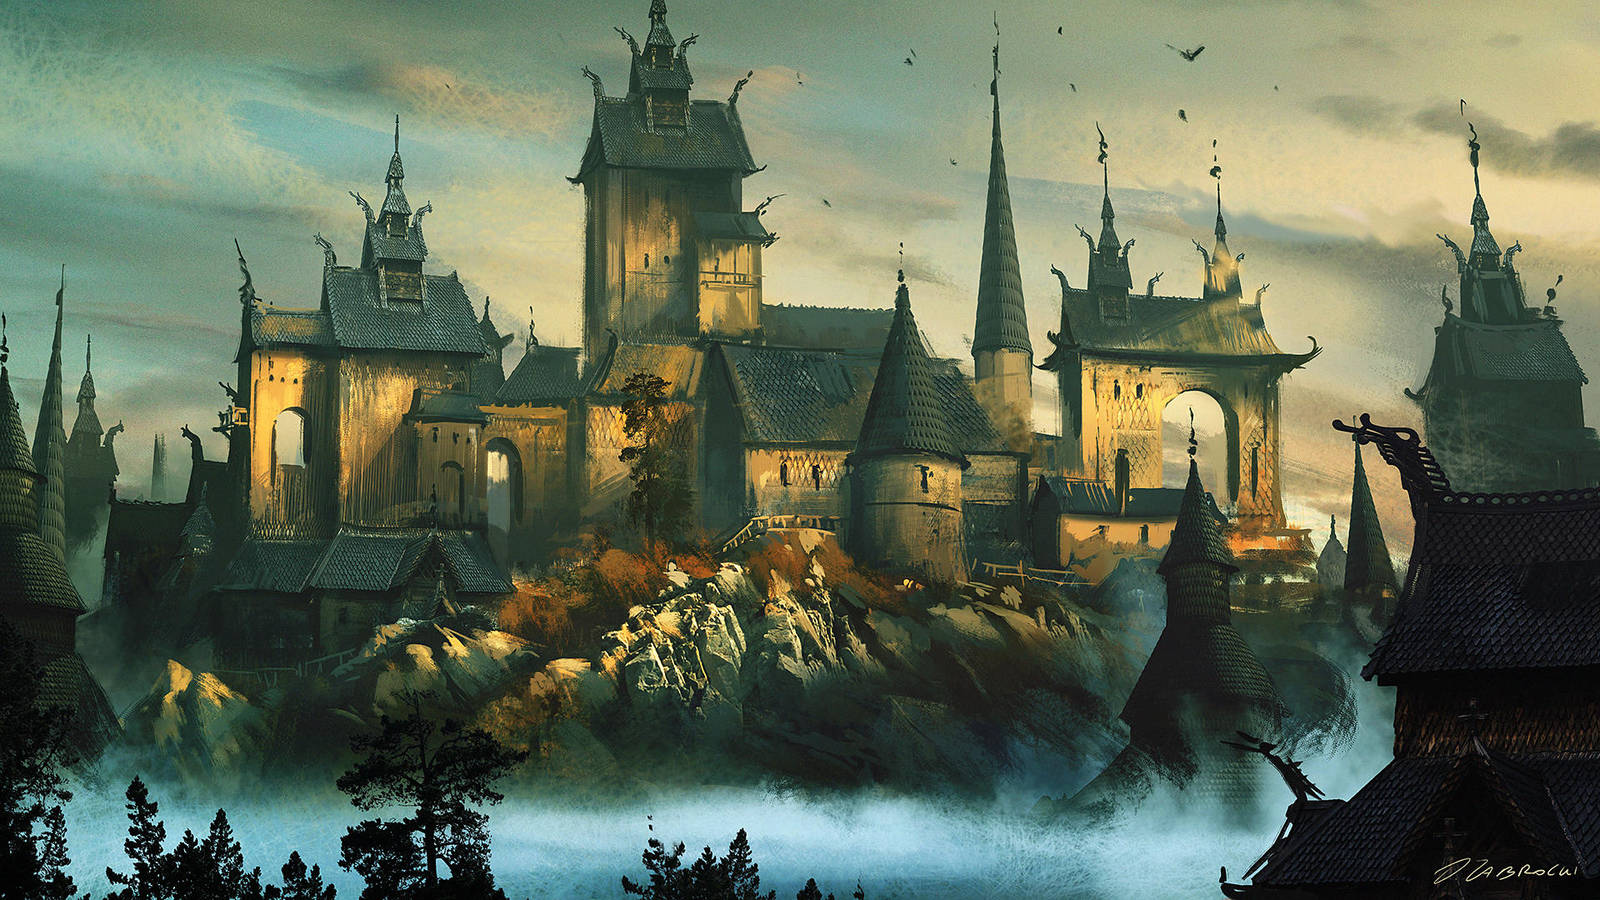 Vikings Fortress by daRoz